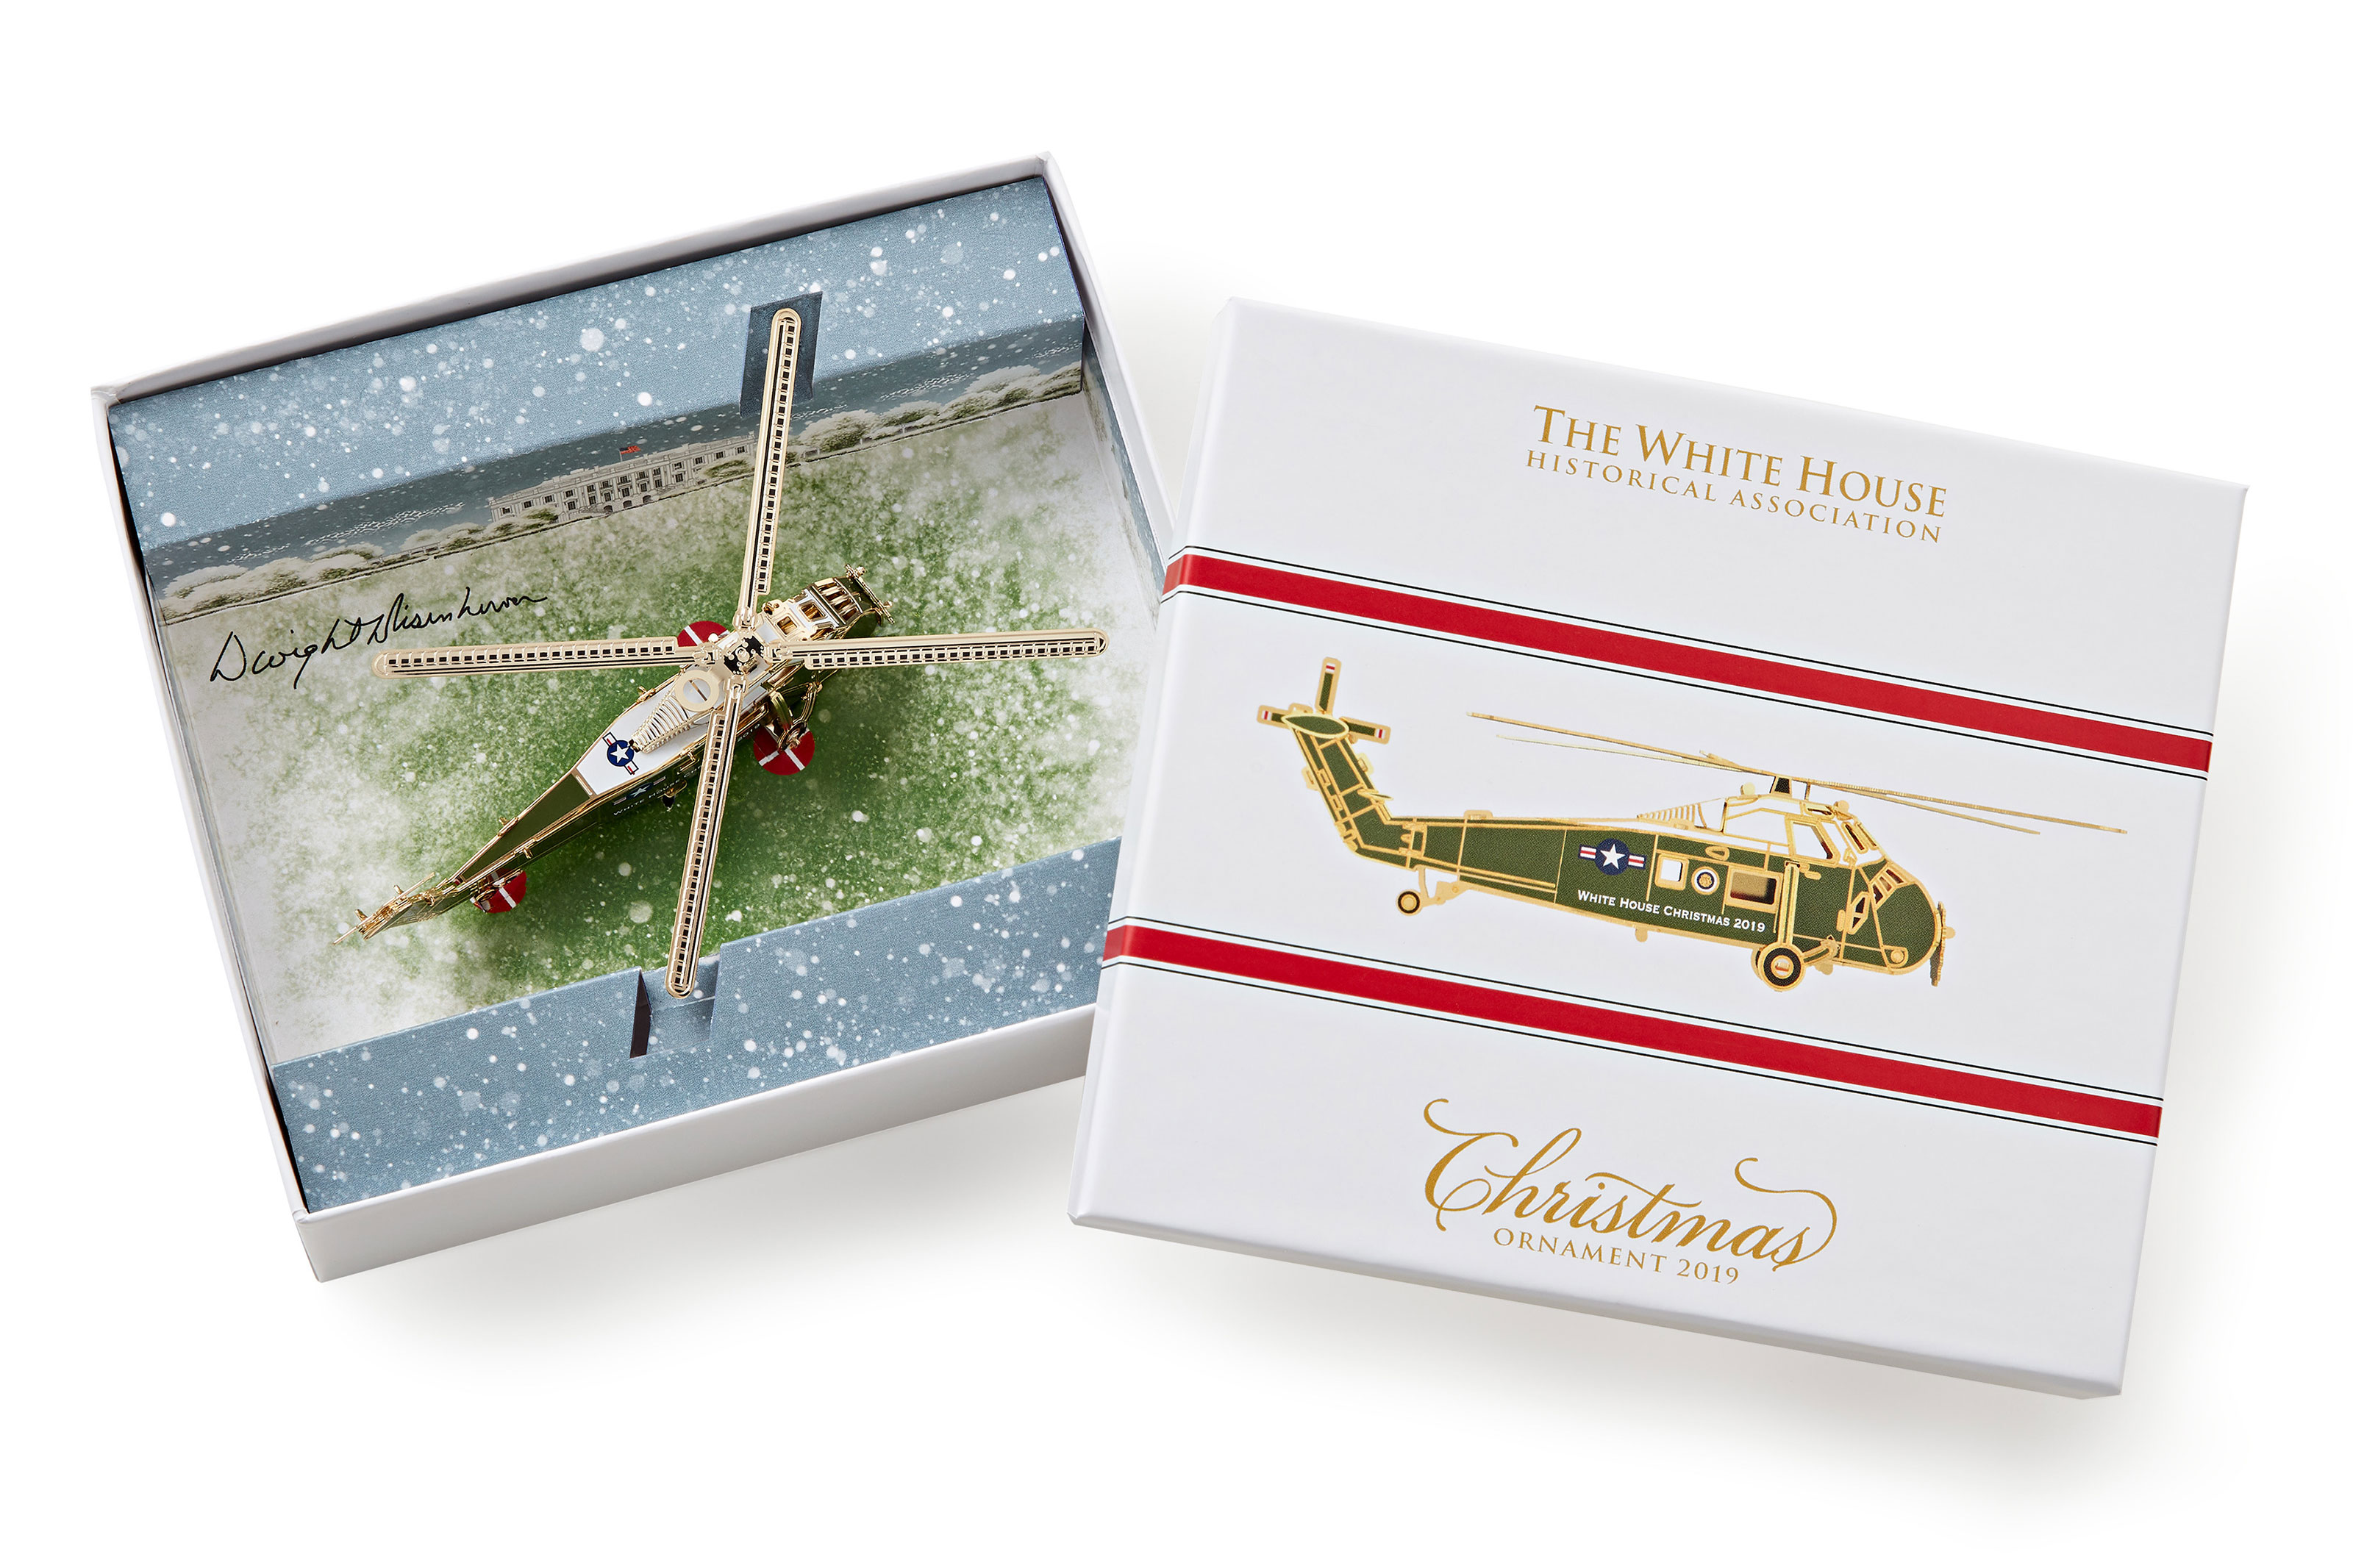 White House Christmas 2019.2019 White House Christmas Ornament Is A Military Helicopter